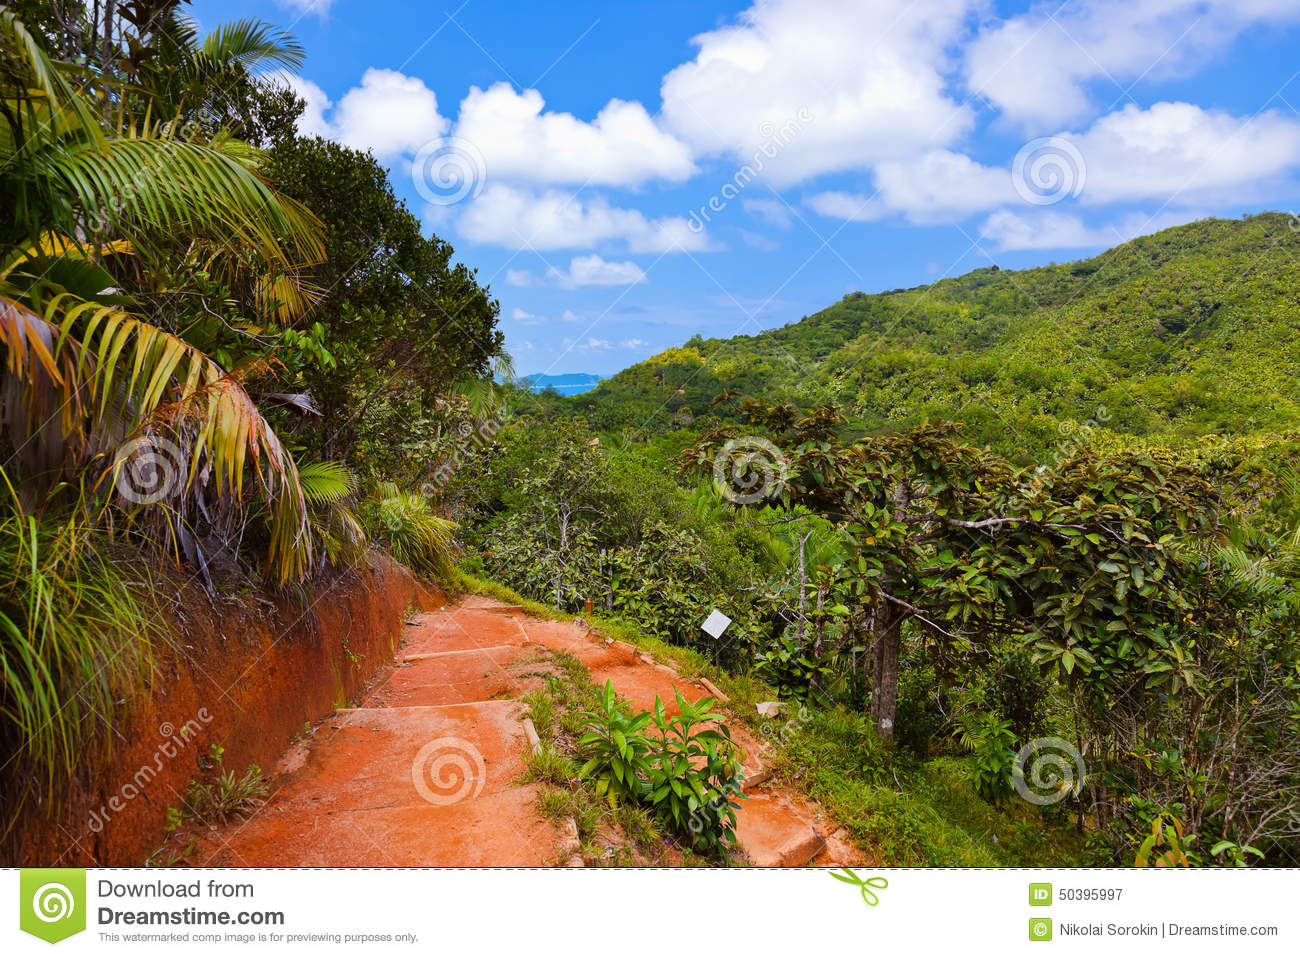 Pathway in jungle - Vallee de Mai - Seychelles